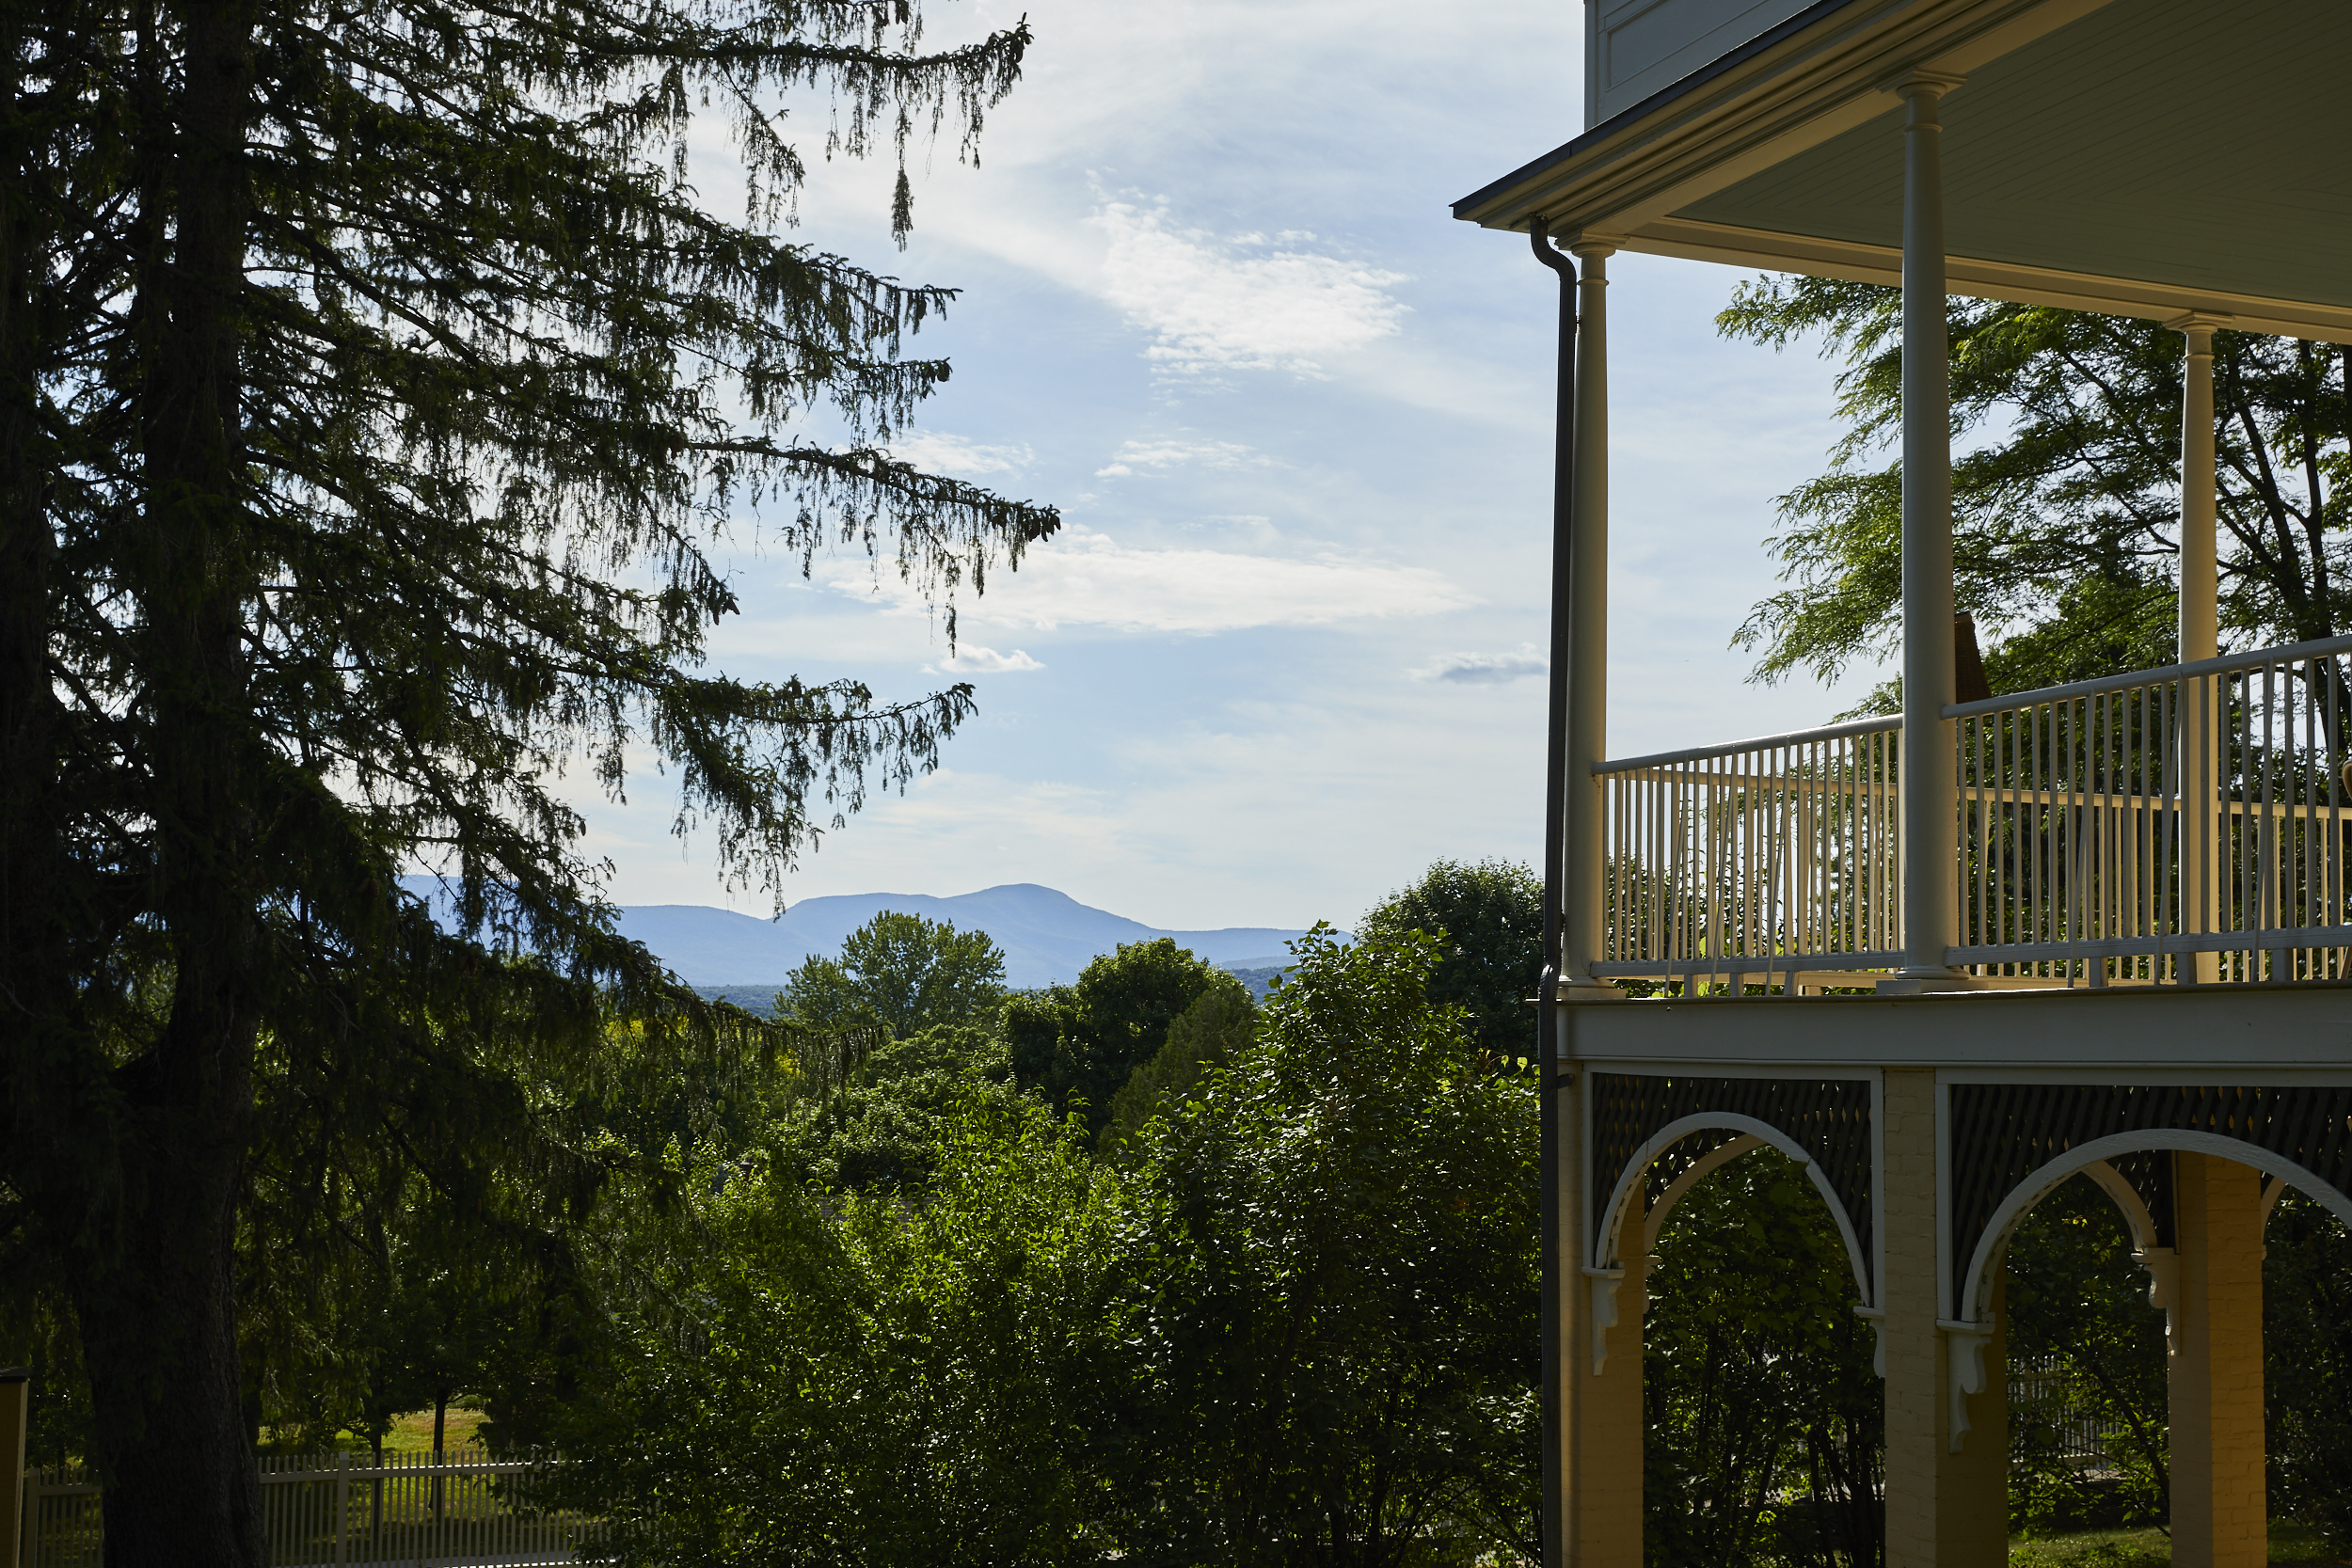 The view from the grounds of the Thomas Cole House.